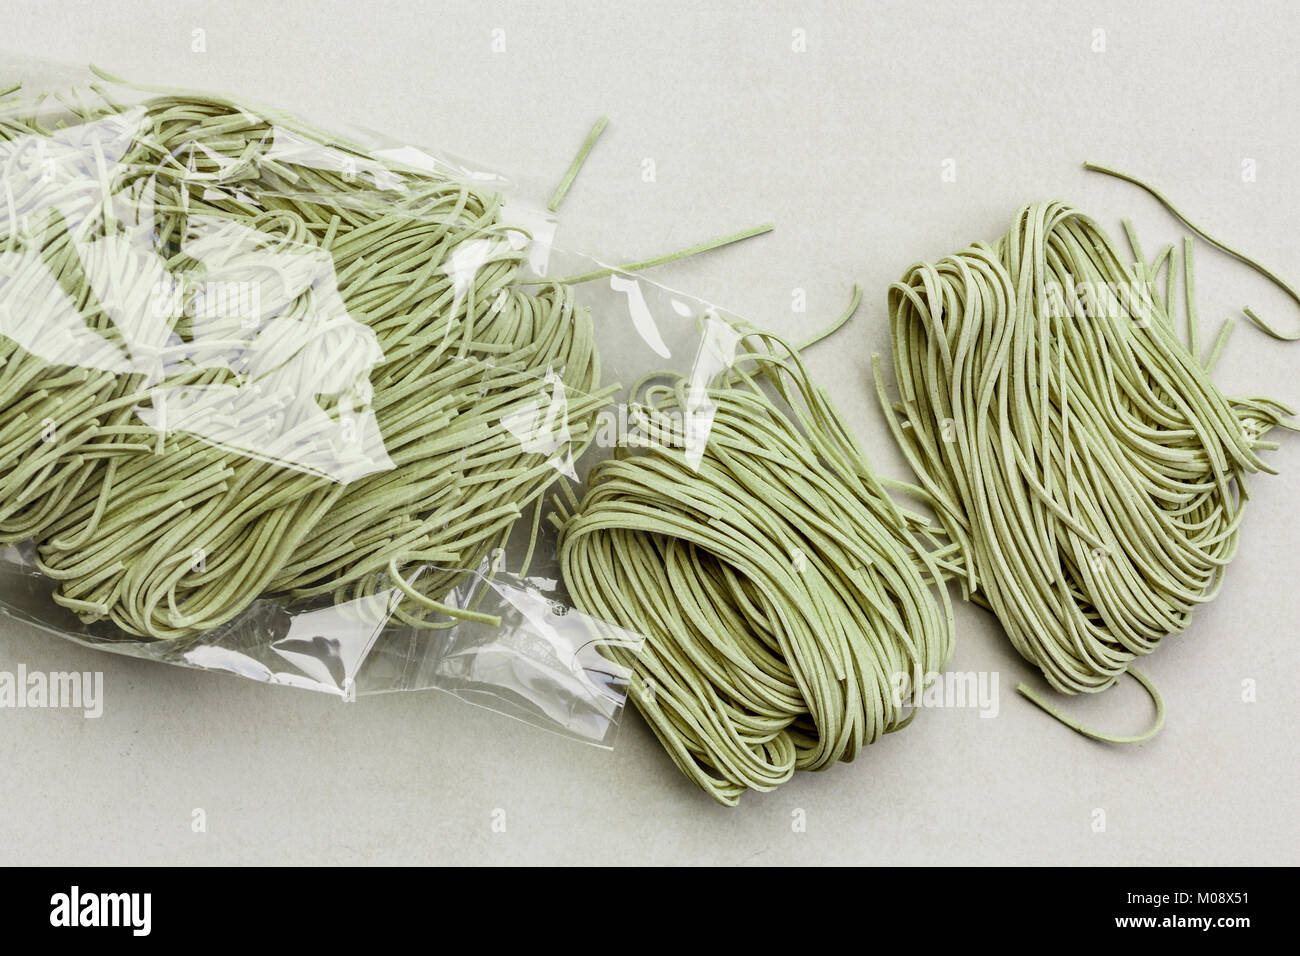 raw green tagliatelle in plastic bag - Stock Image